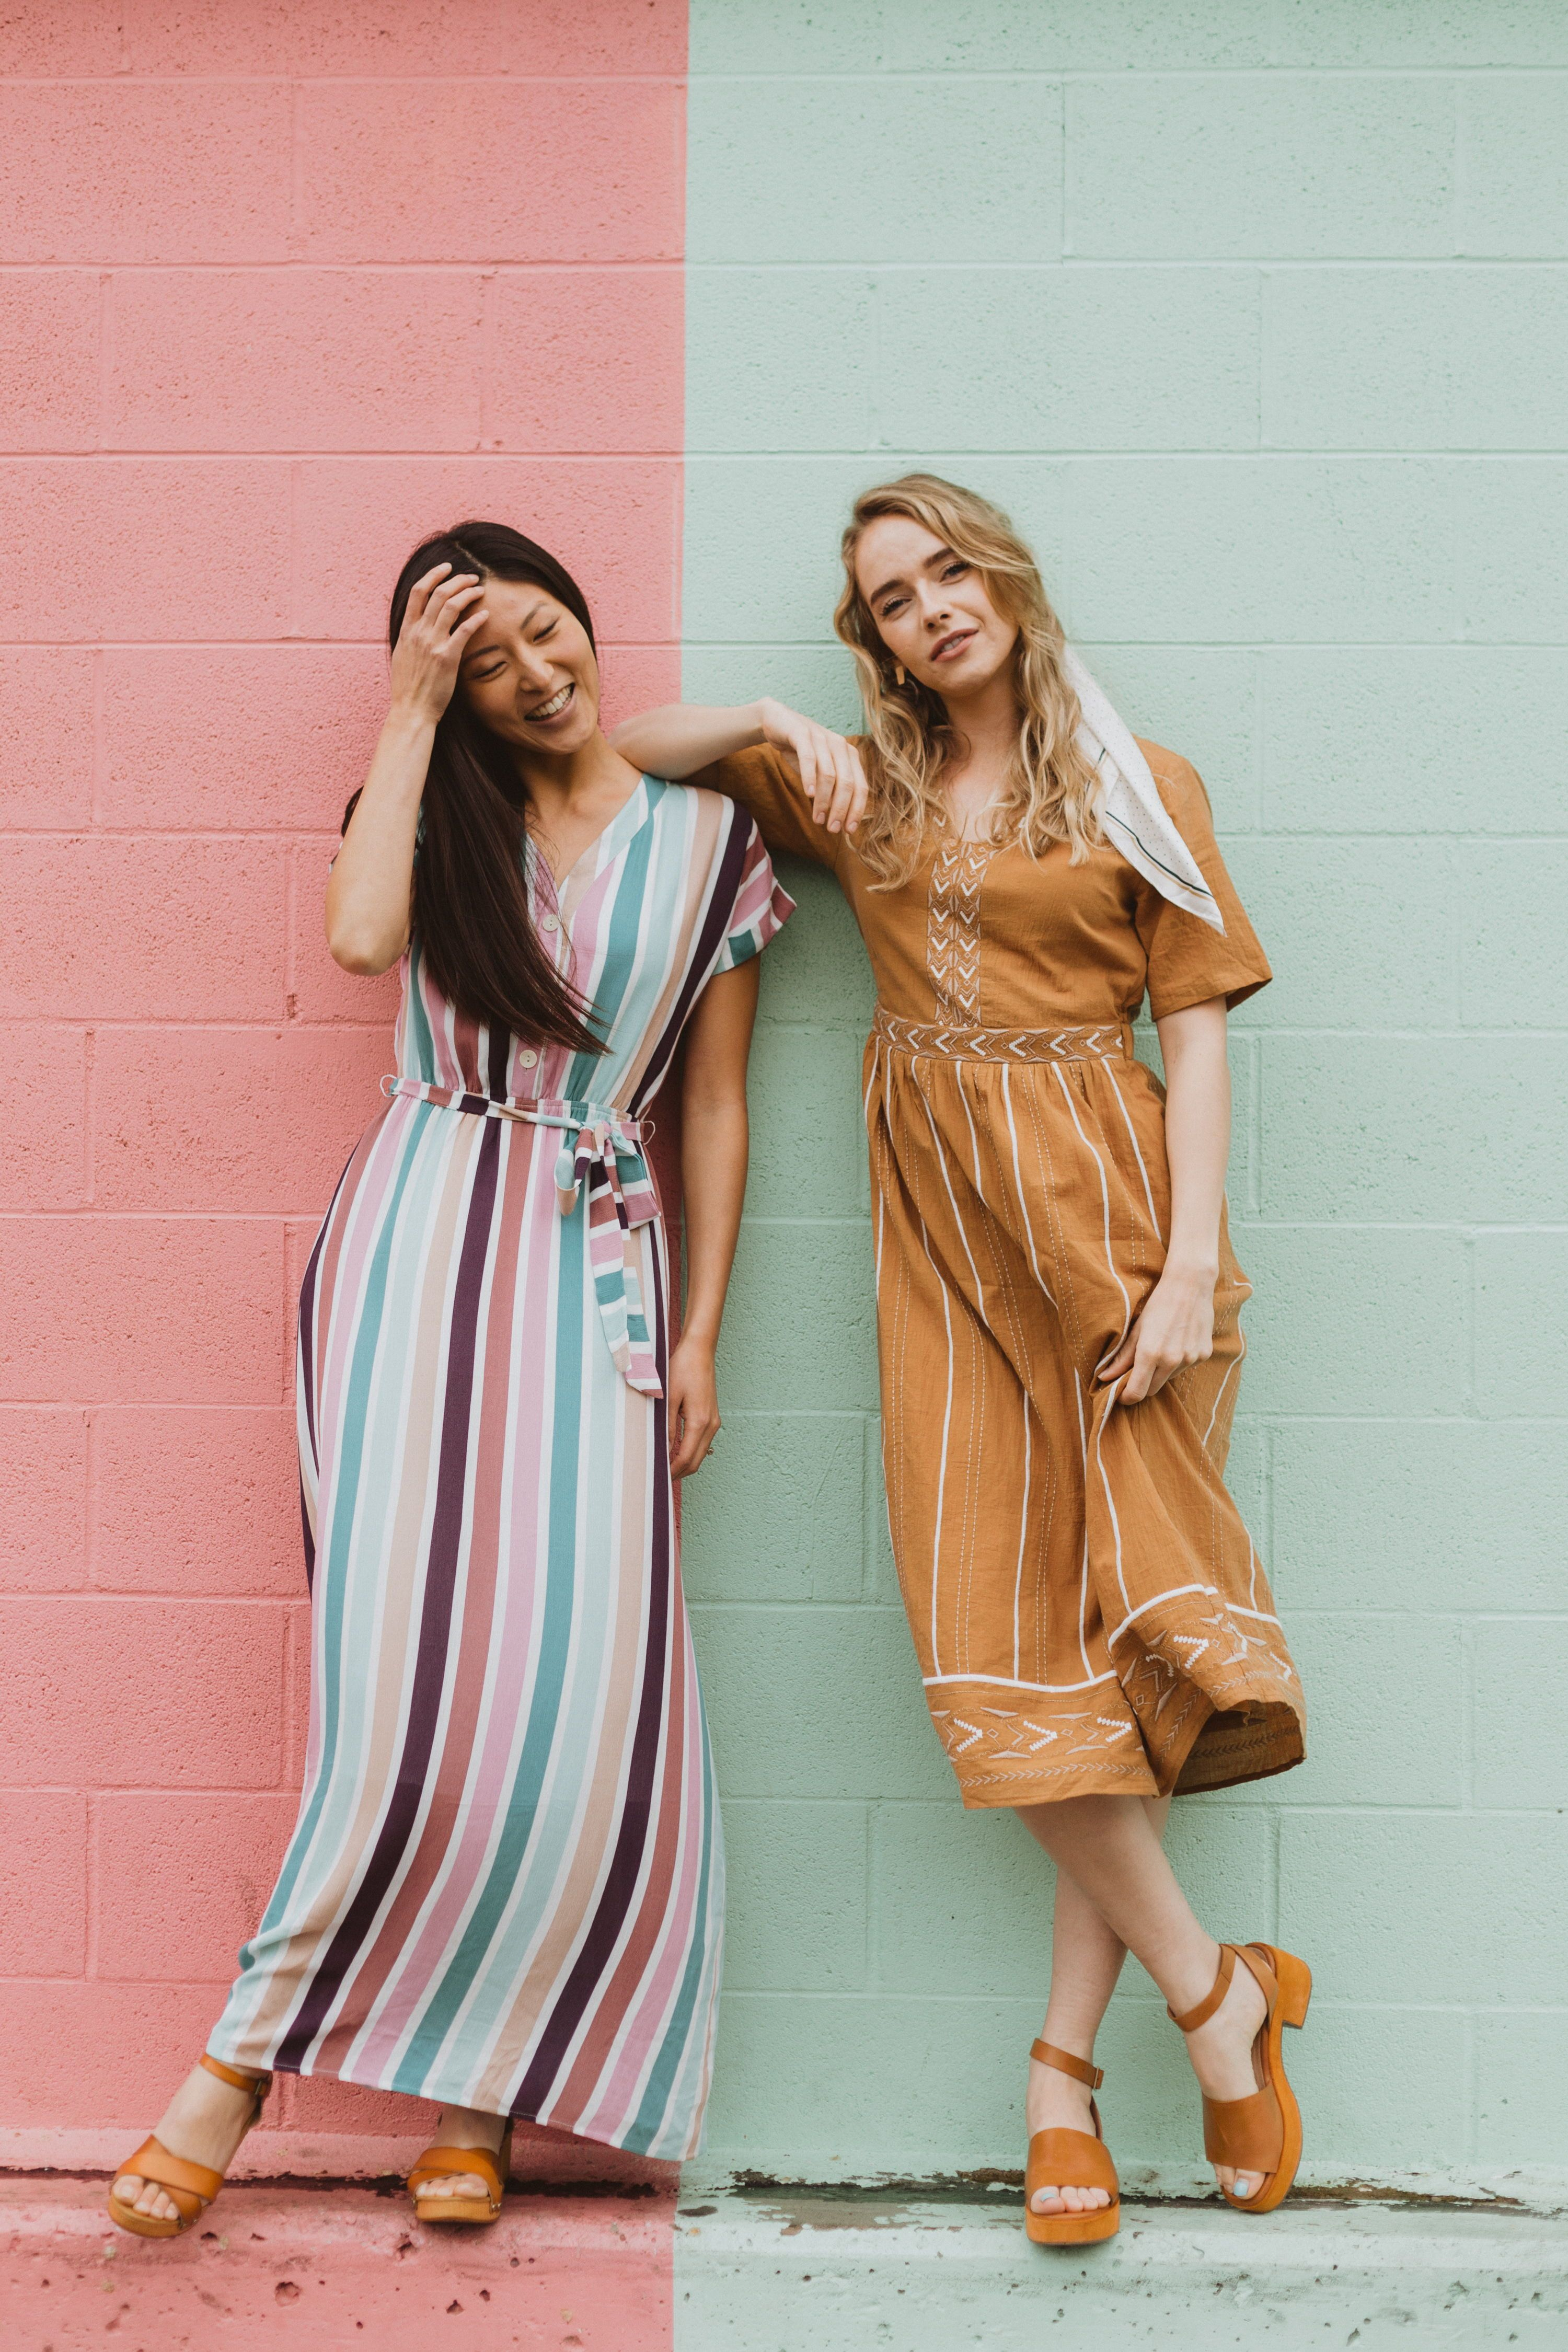 The Cha Cha Striped Maxi Dress Is As If All Your Favorite Things Came Together As A Dress It Is Nursing Friendly With Fashion Striped Maxi Dresses Dress Me Up [ 4500 x 3000 Pixel ]